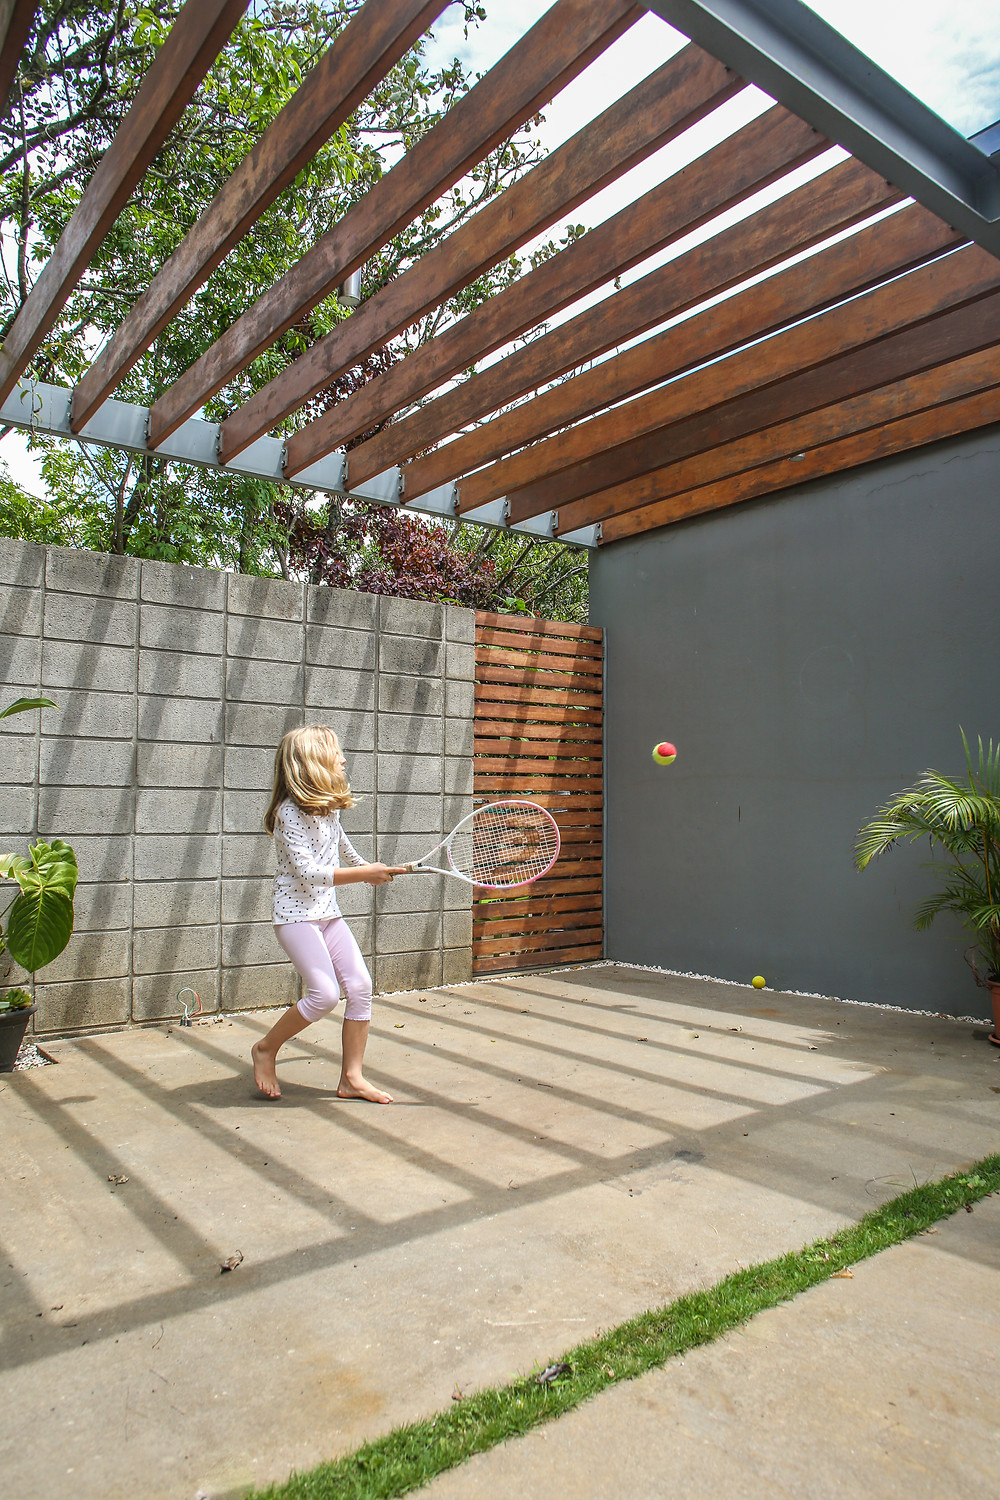 Home tennis wall designed by Inverse Project